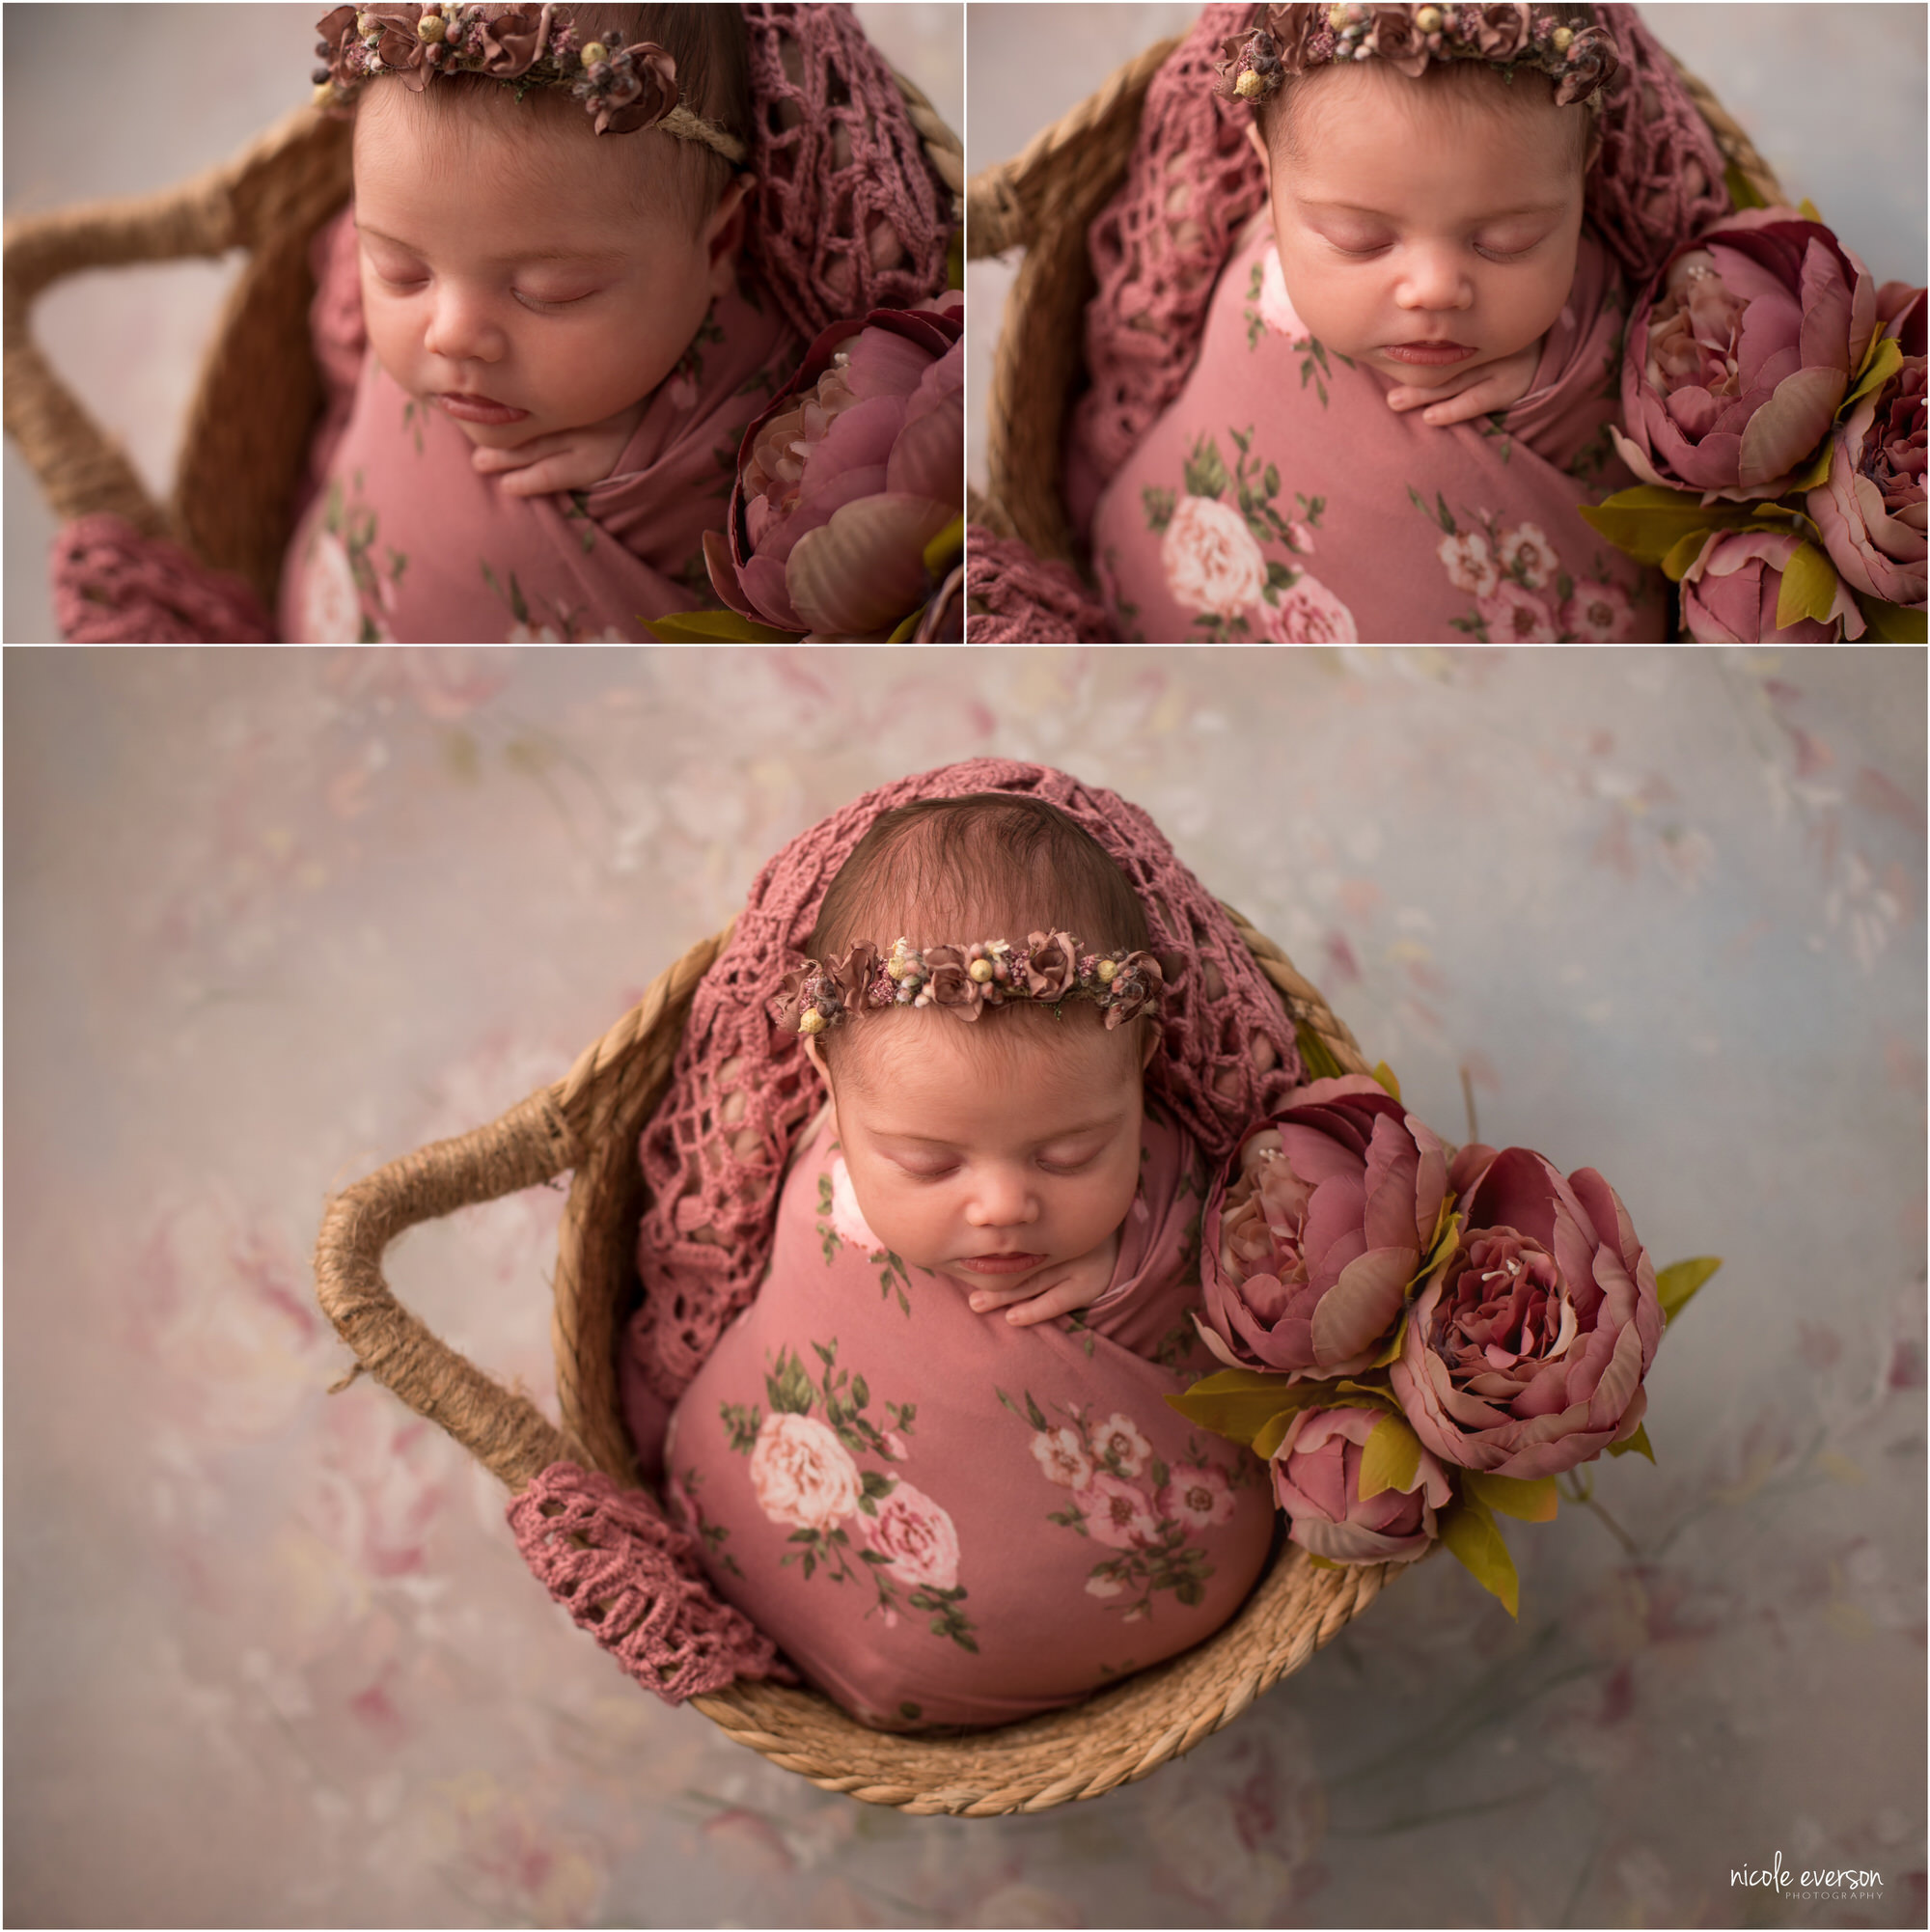 photos of a newborn girl 1 week old sleeping in a basket wrapped in a pink floral photography prop